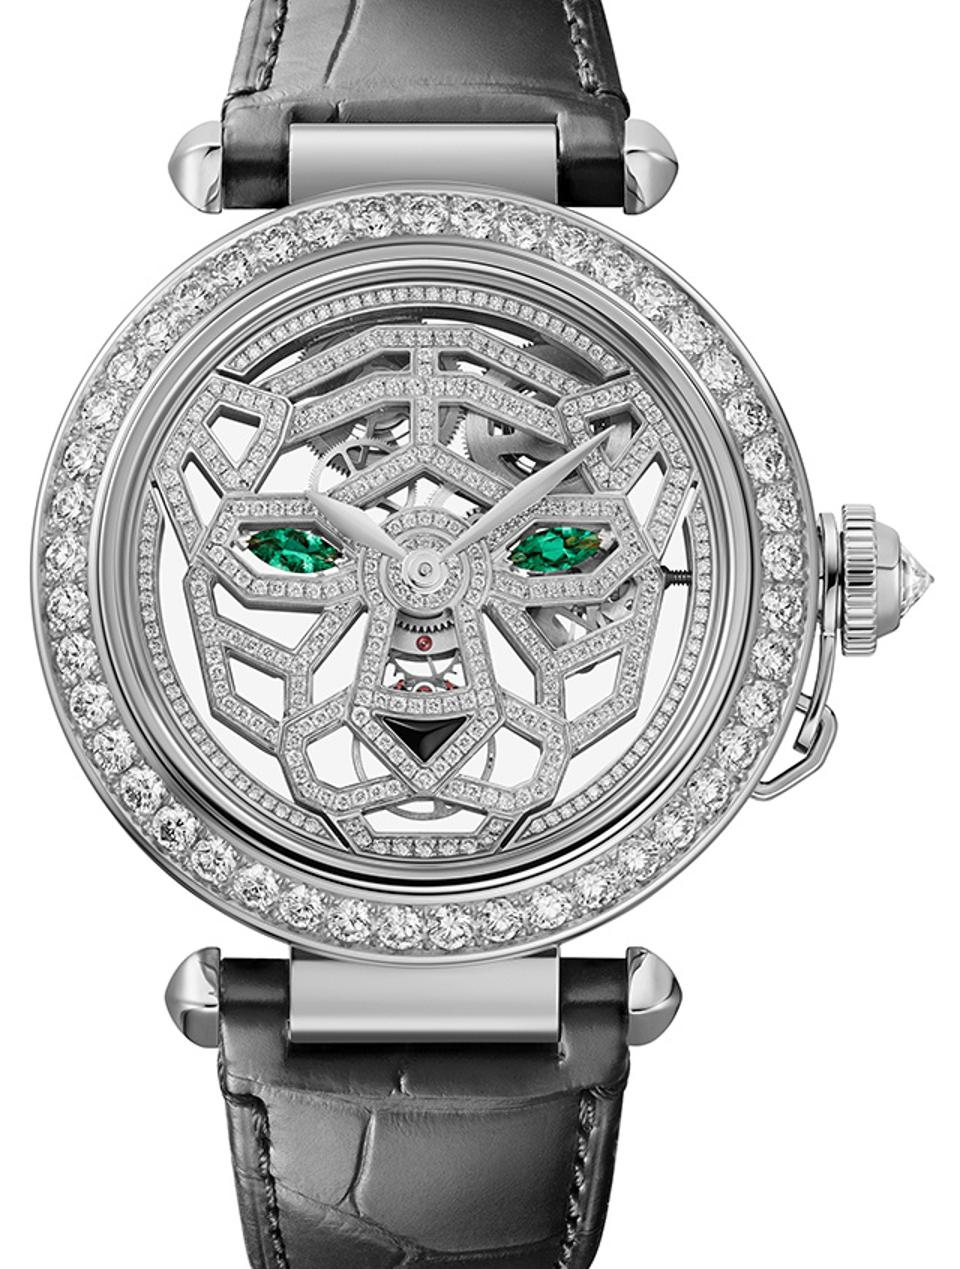 The Panthere high jewelry version of the Cartier Pasha.